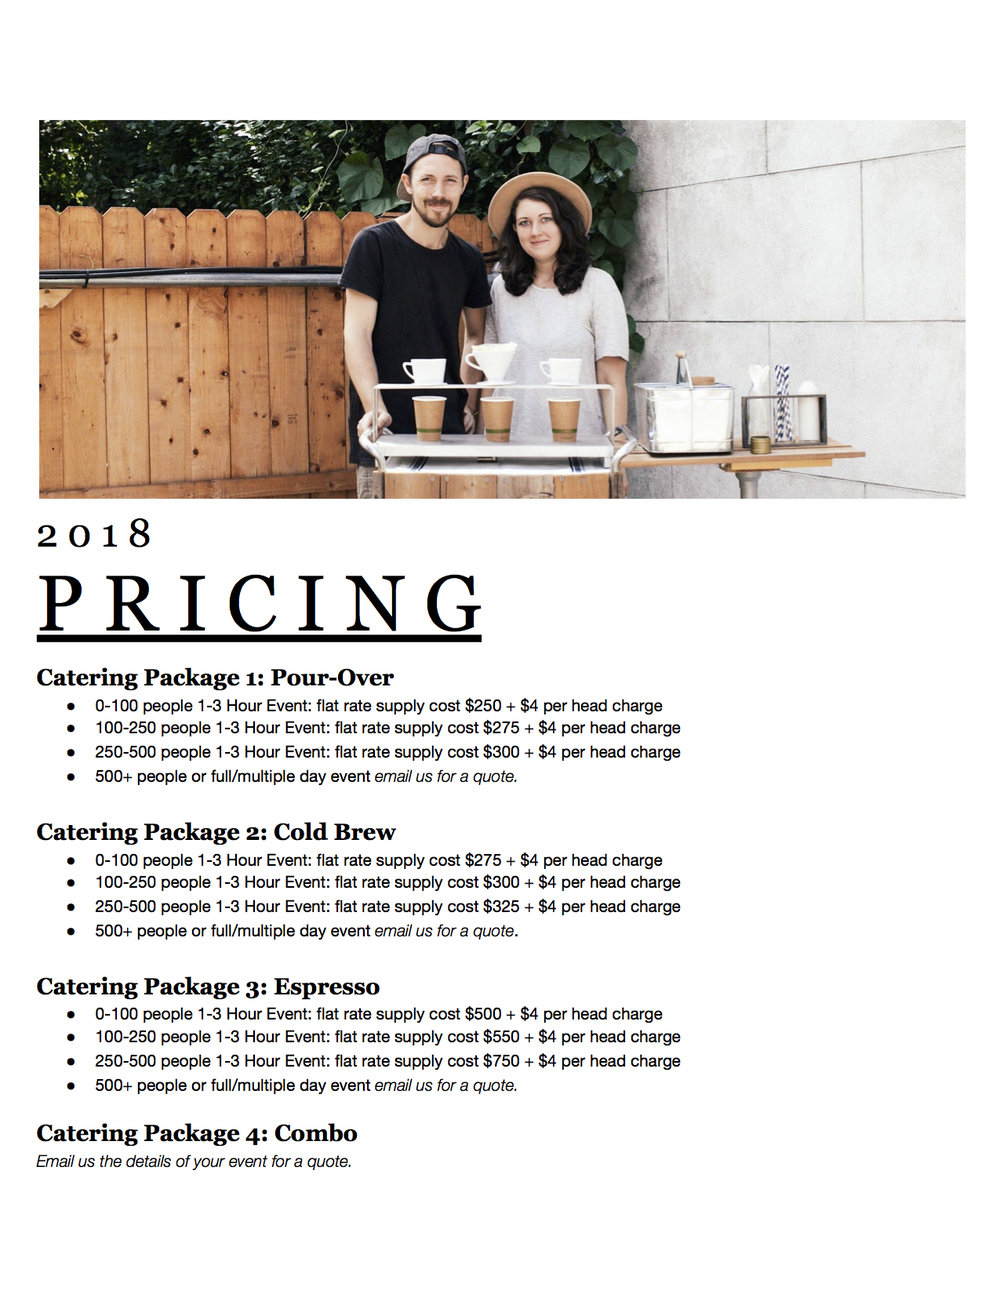 Pricing Guide 2018 Page 4.jpg